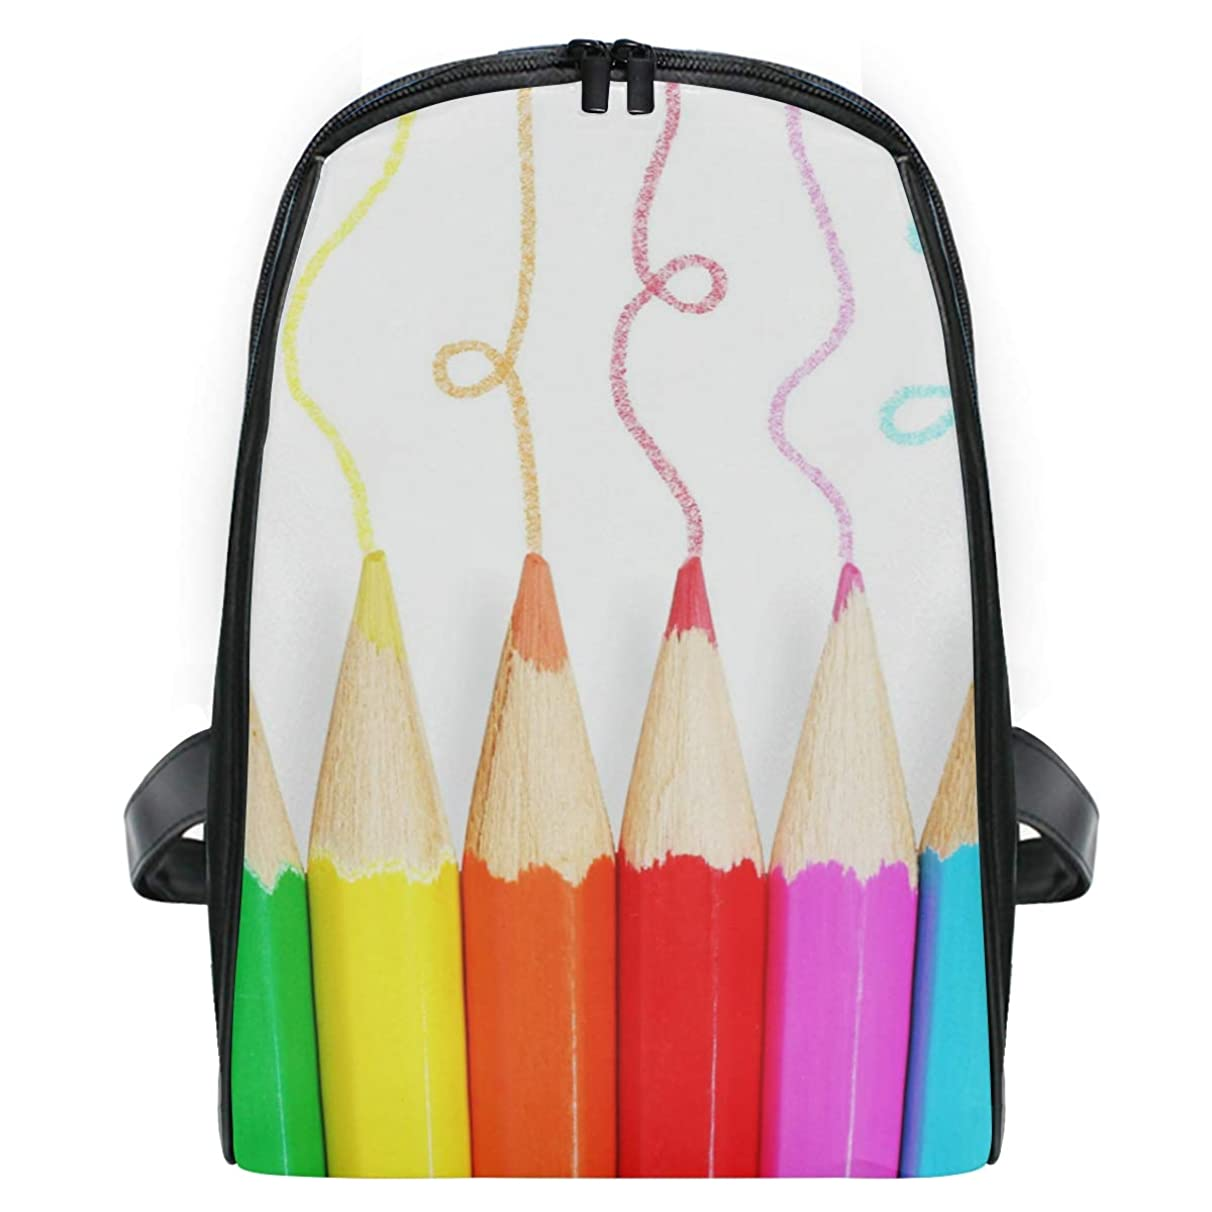 Backpack Colored Pencils Personalized Shoulders Bag Classic Lightweight Daypack